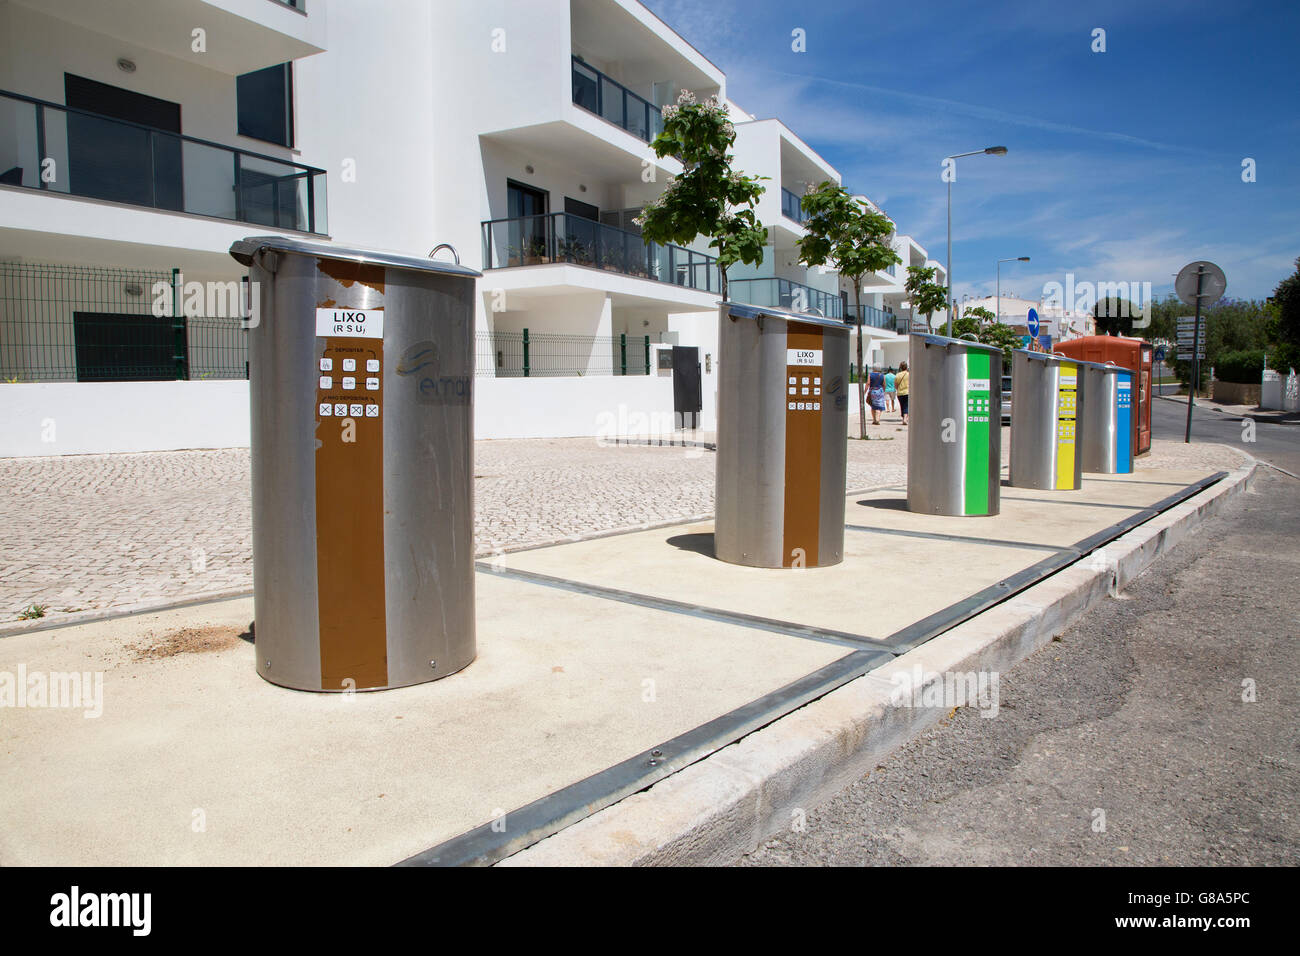 Roadside Recycling Bins in Alvor Portugal - Stock Image